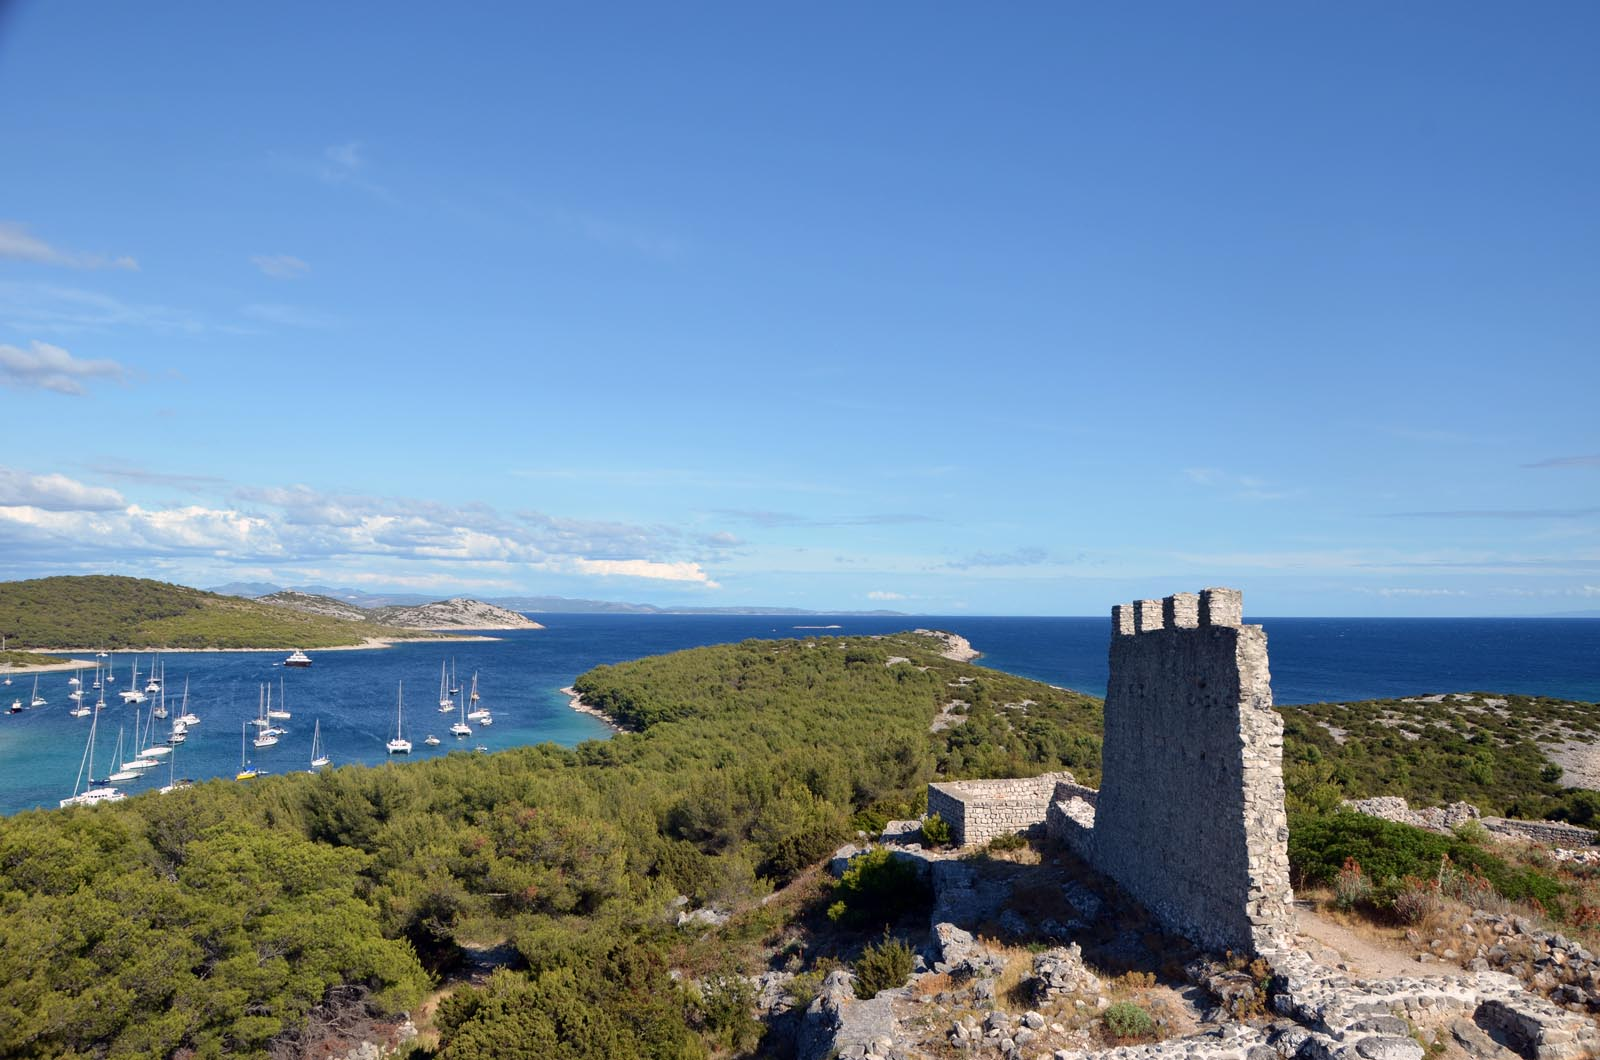 Croatia Sailing Destinations - Žirje